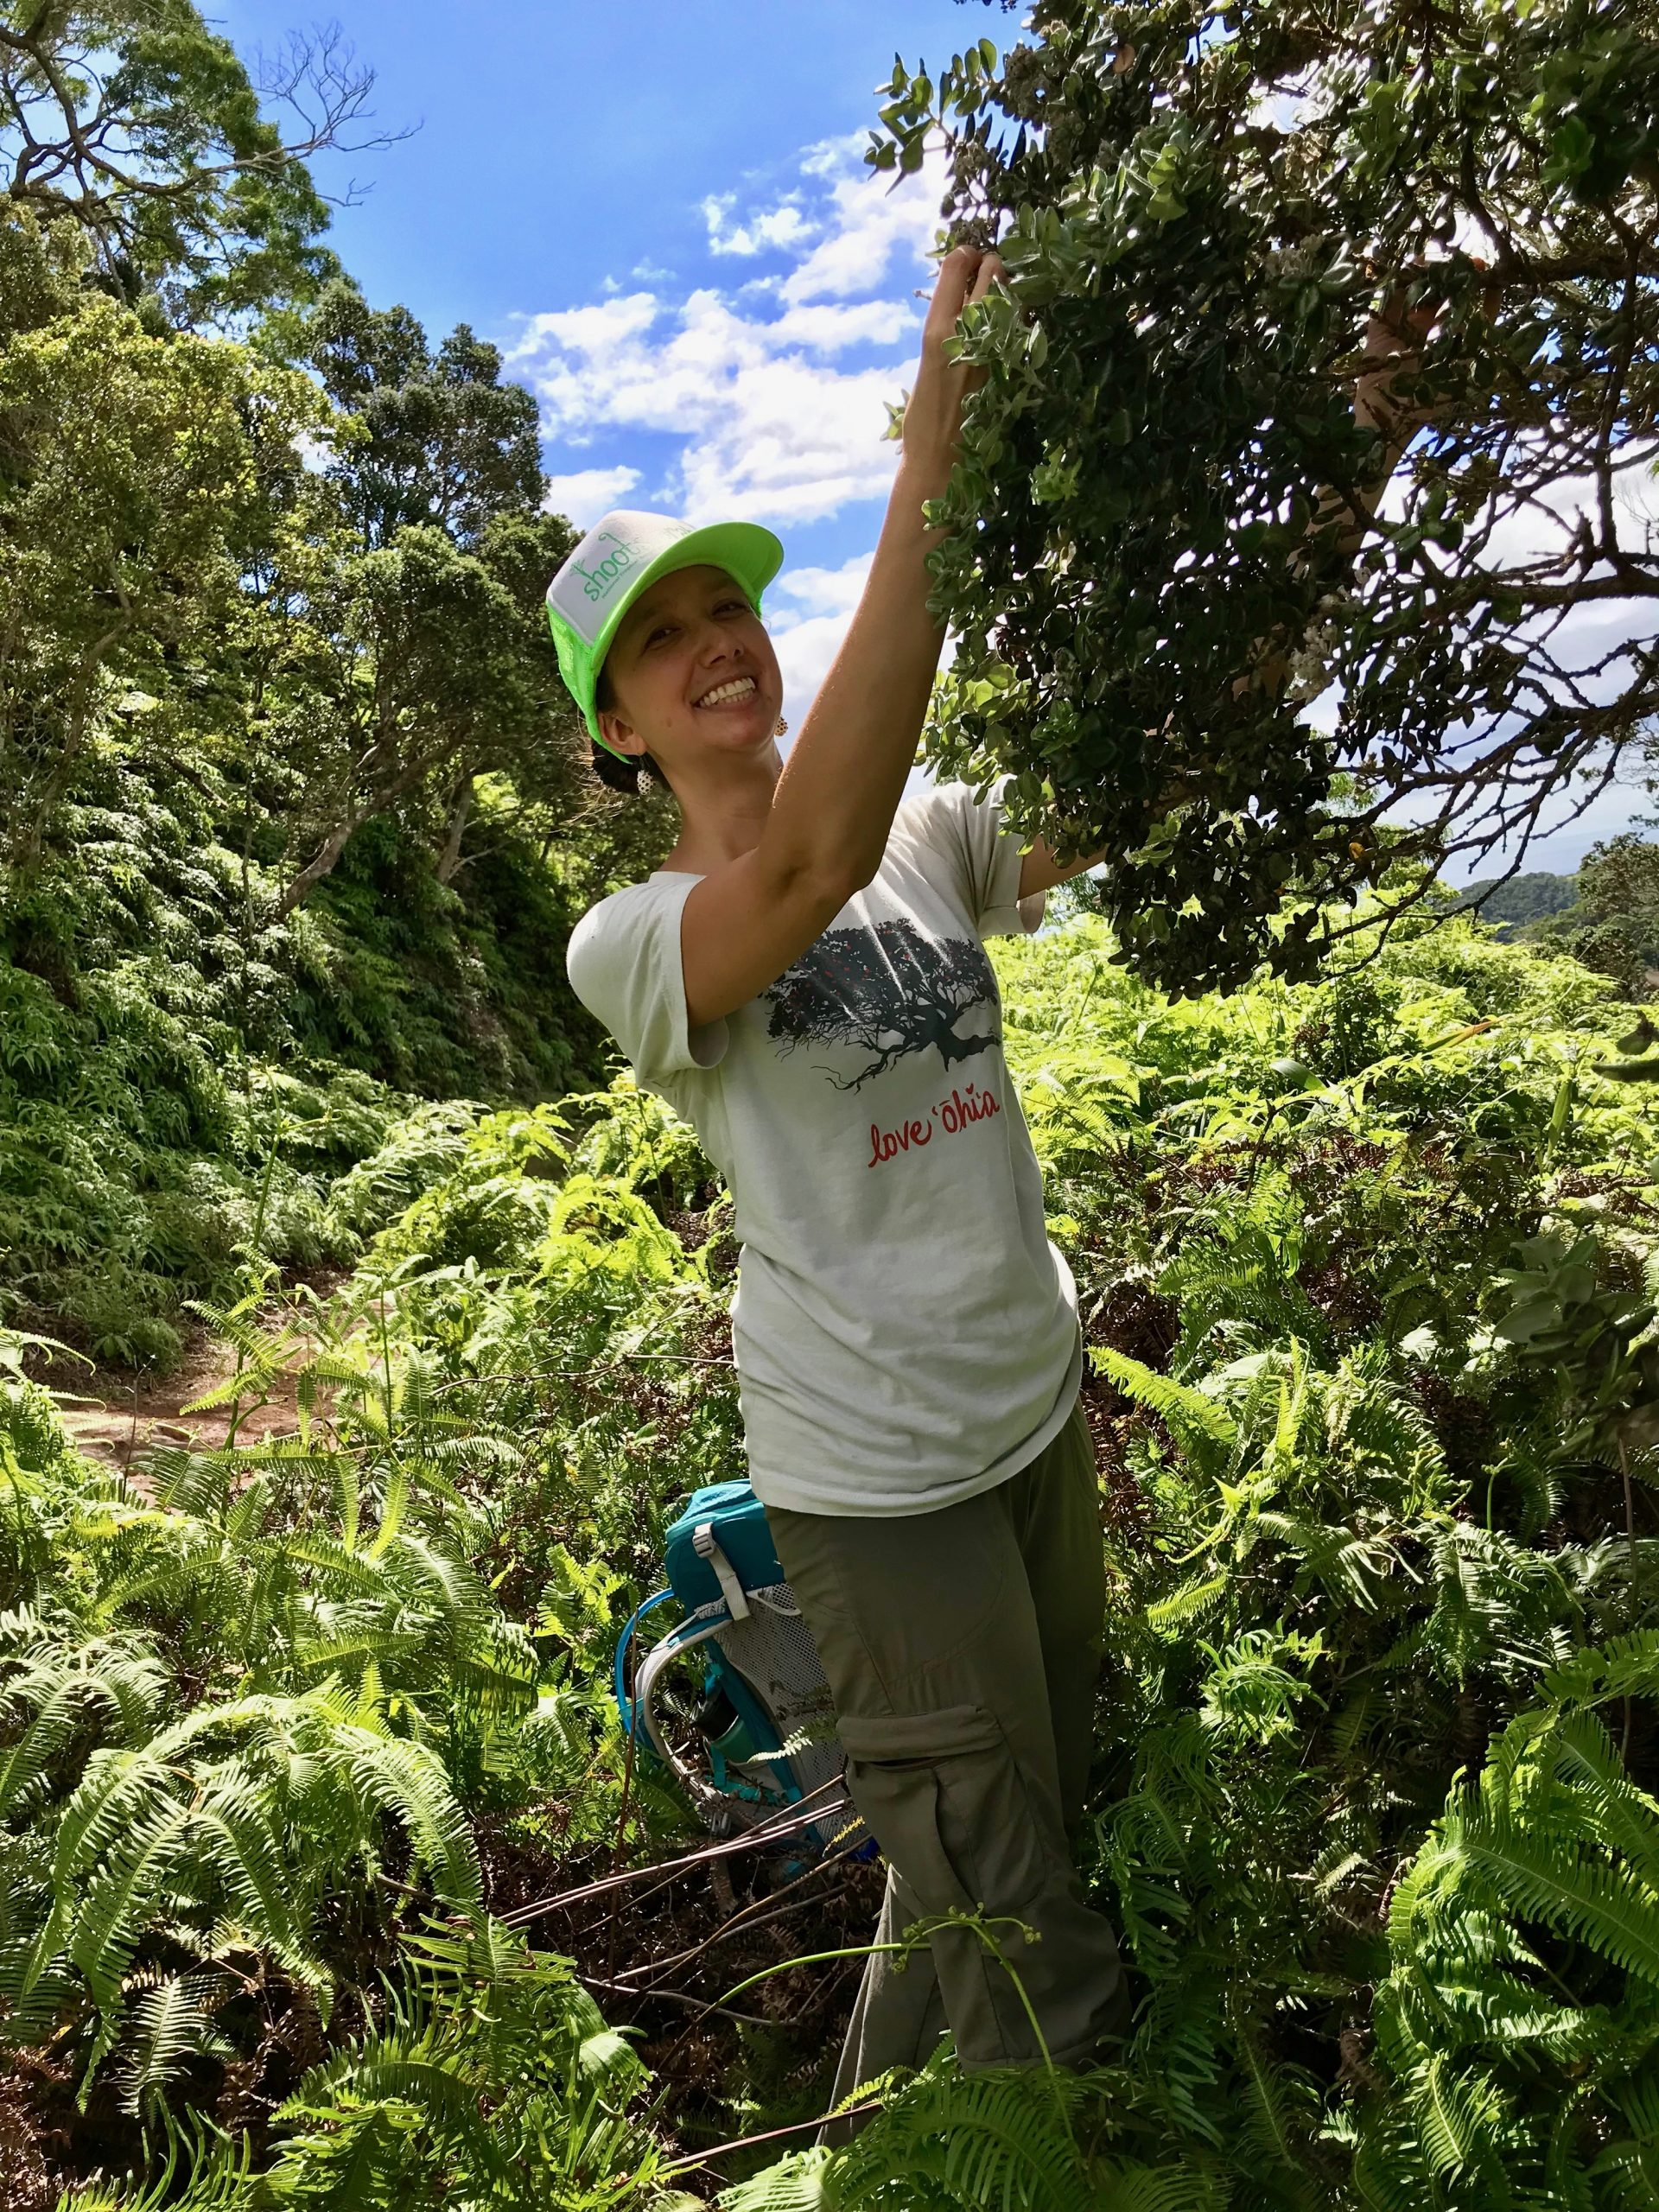 Lyon Arboretum Seed Bank Manager, Marian Chau, Ph.D., makes a seed collection from Metrosideros polymorpha var. polymorpha on O'ahu, while sporting a shirt that shares her love for these culturally important trees.